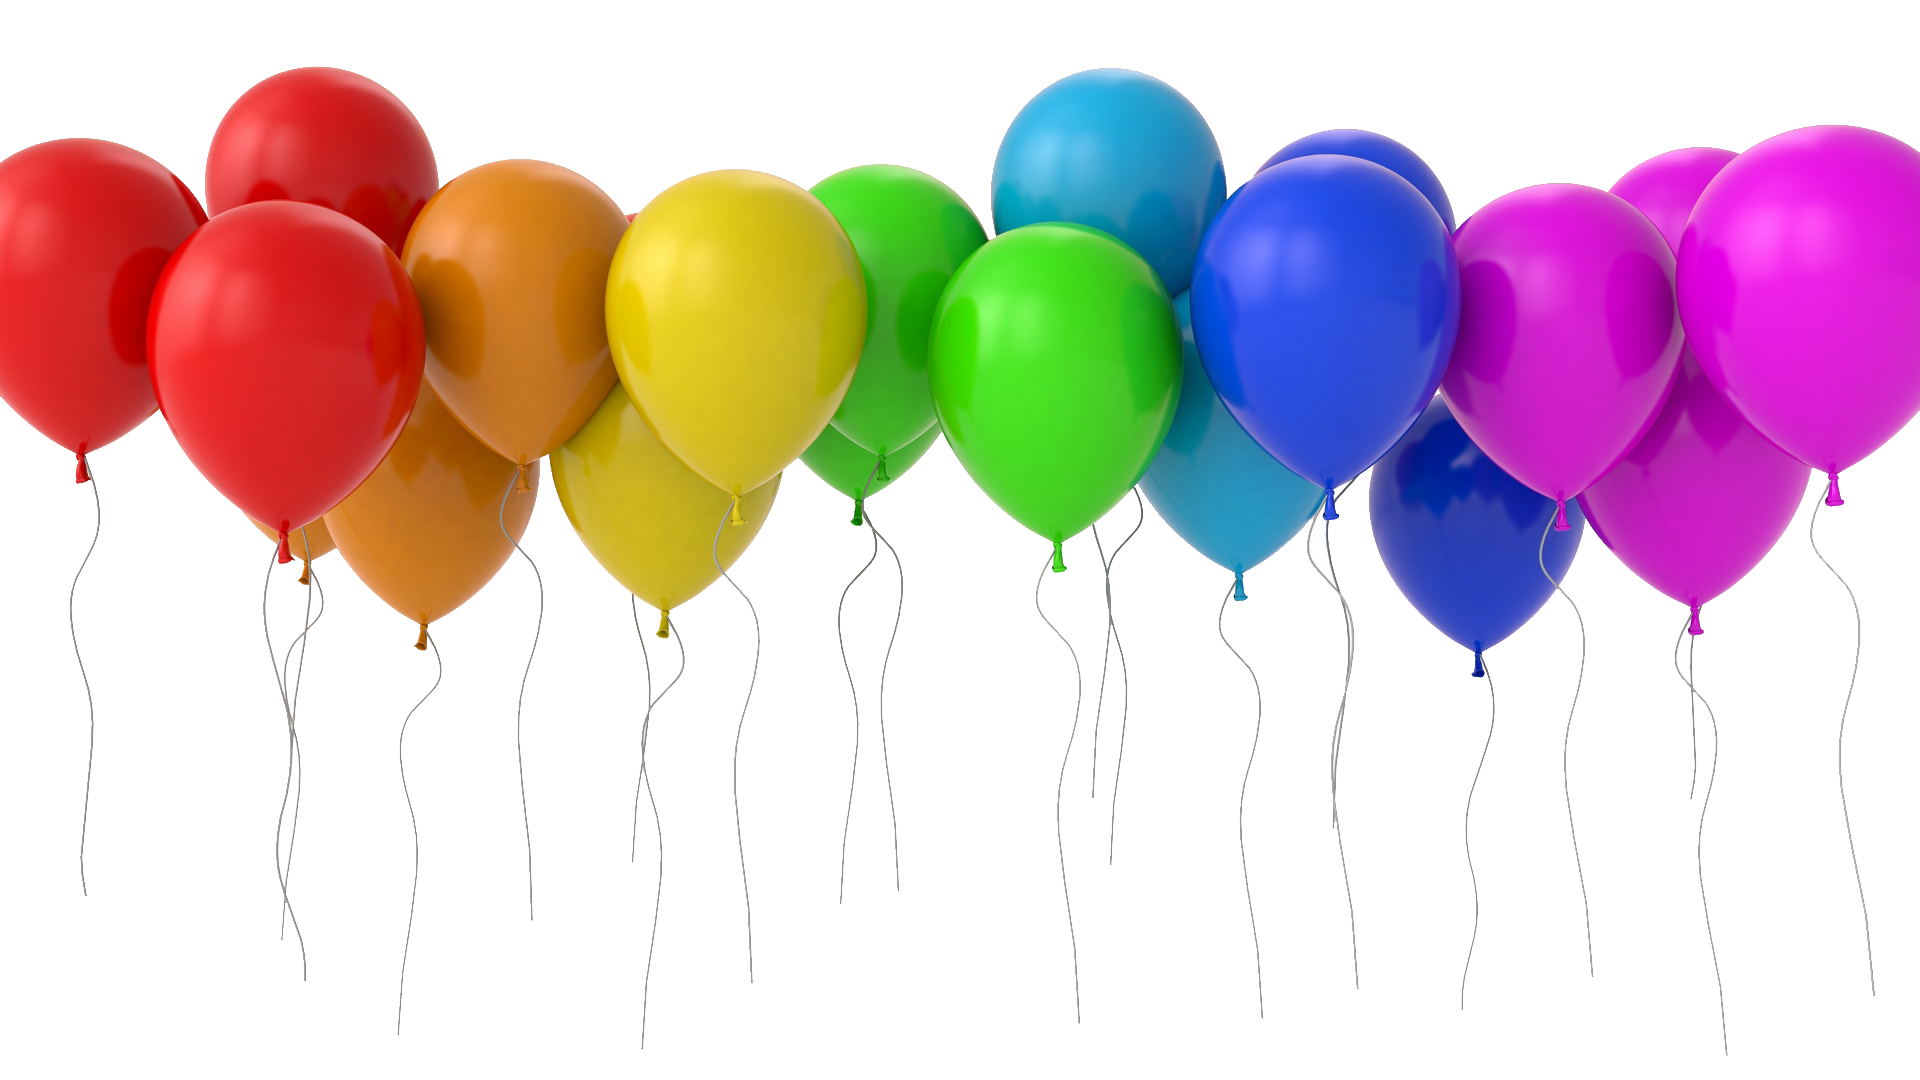 Balloons png transparent background. Ballons images pluspng download